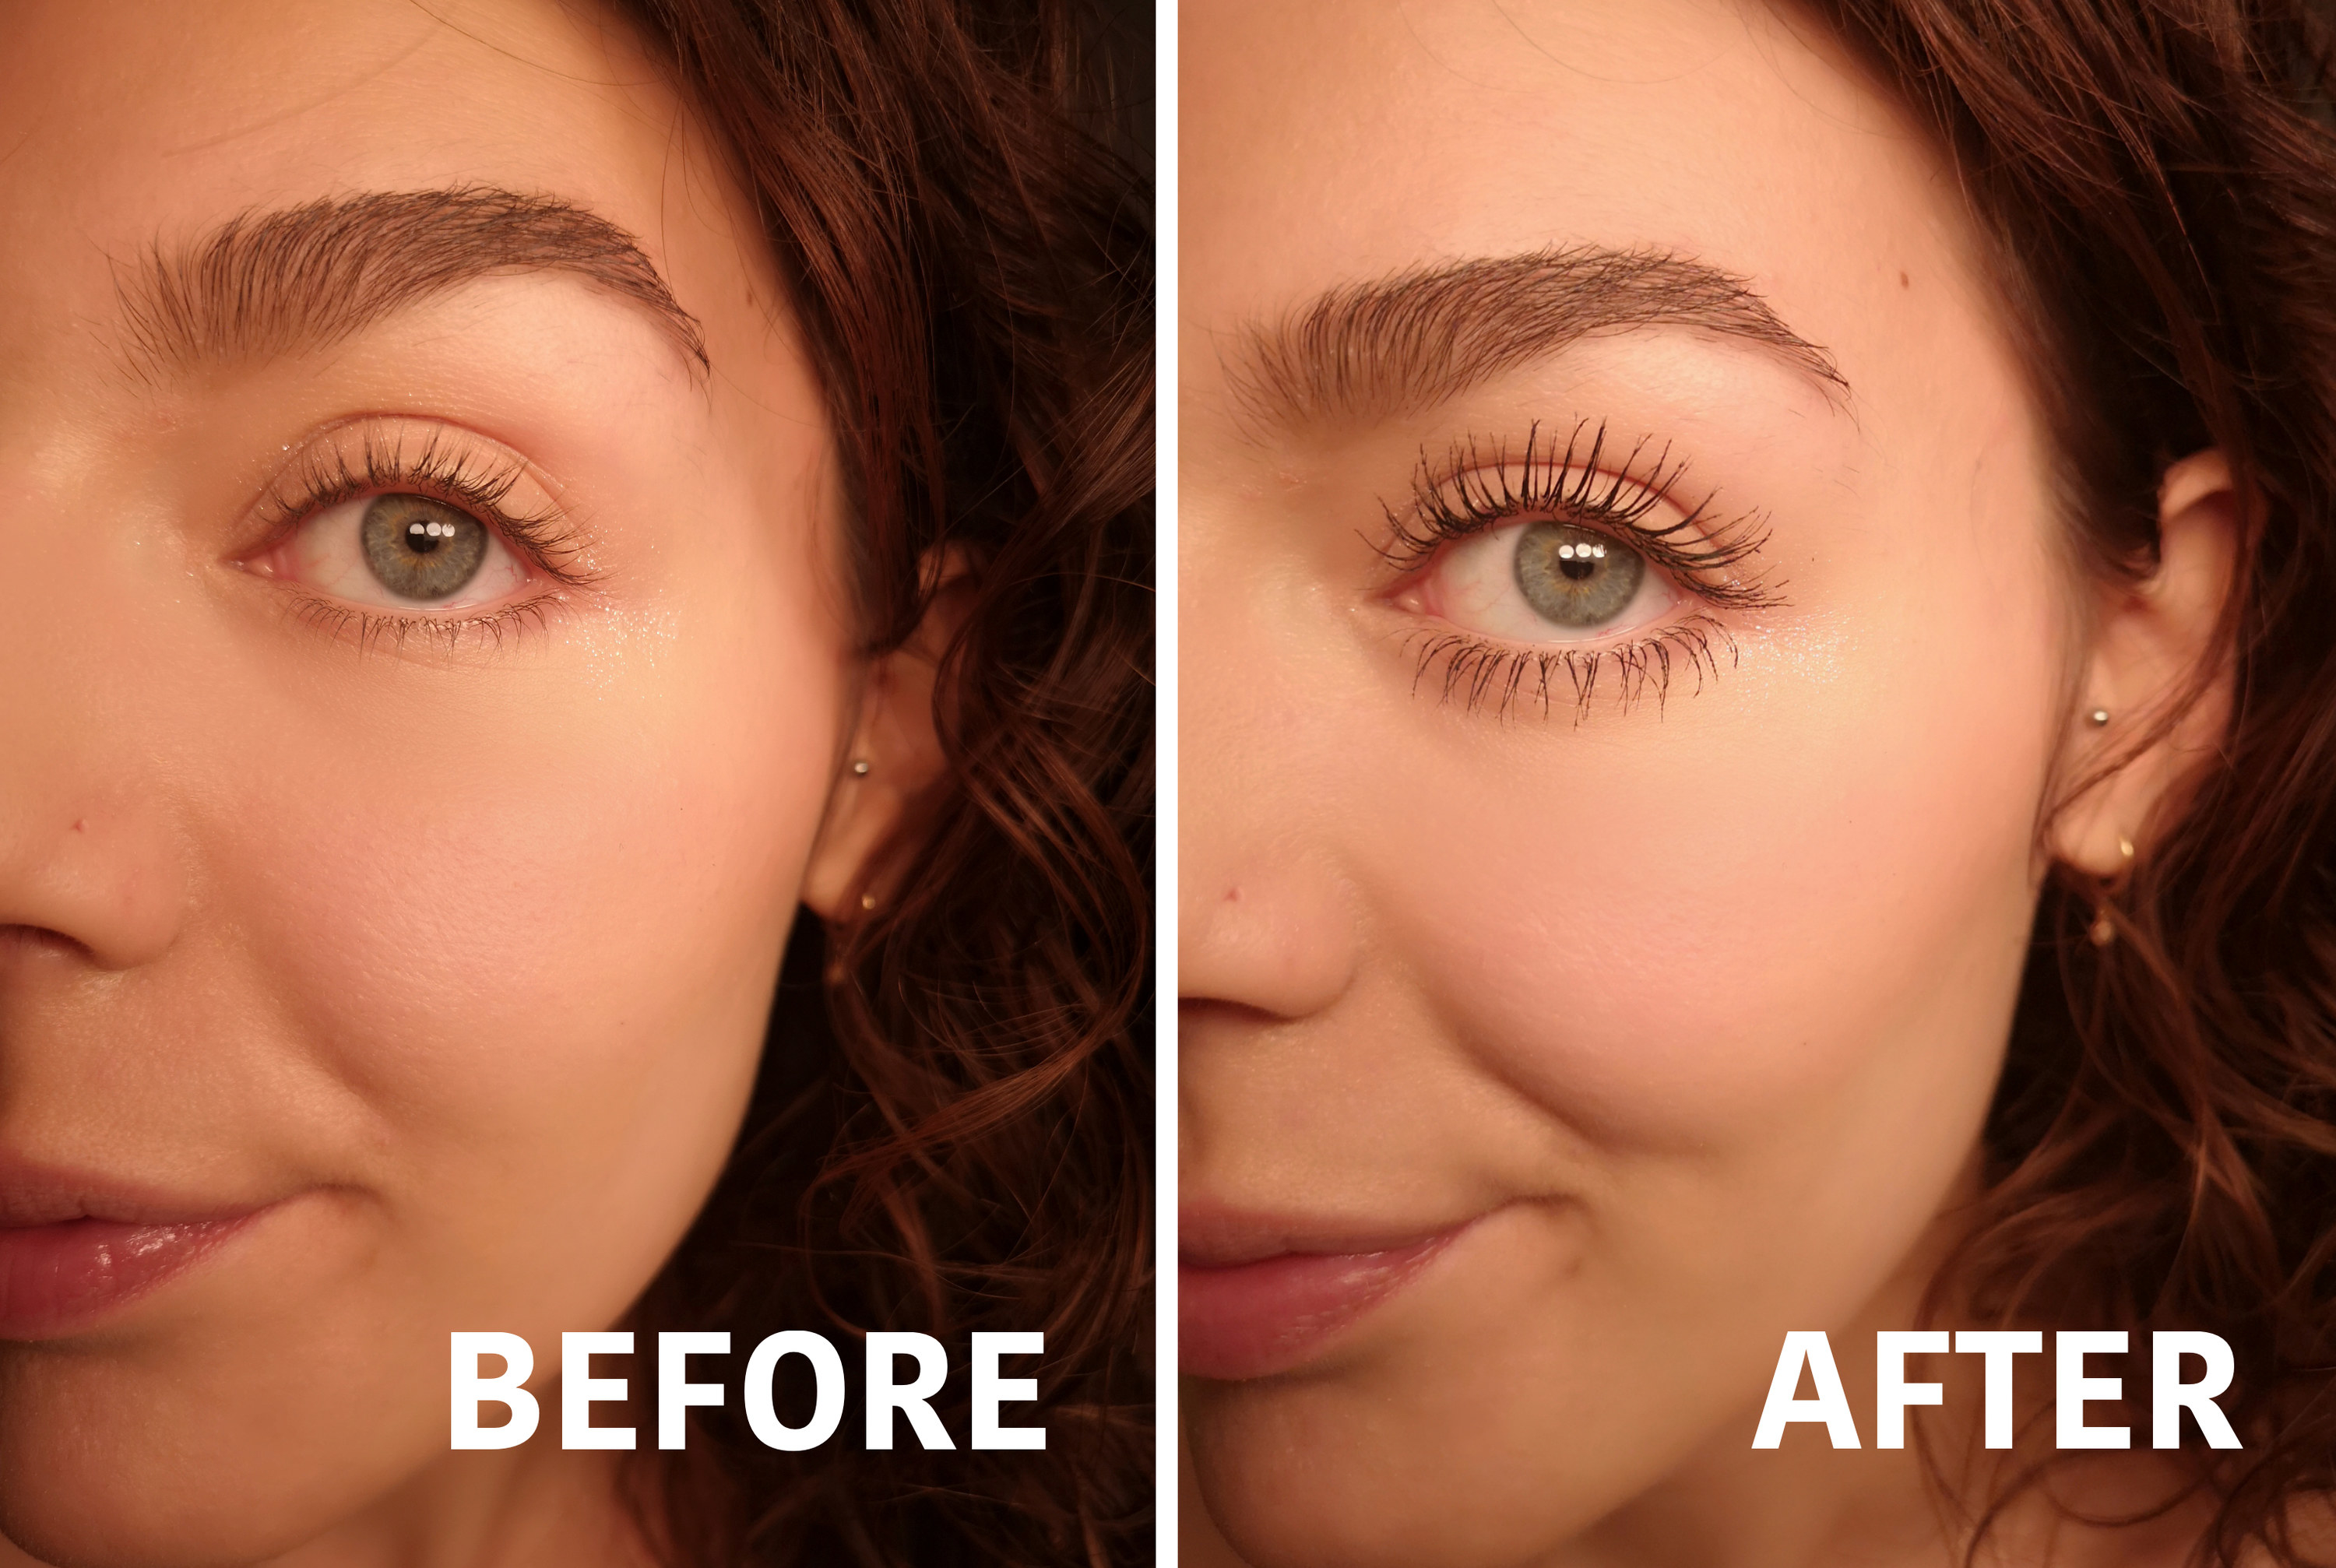 Brittany before using the mascara and Brittany after putting it on, with visibly longer eyelashes